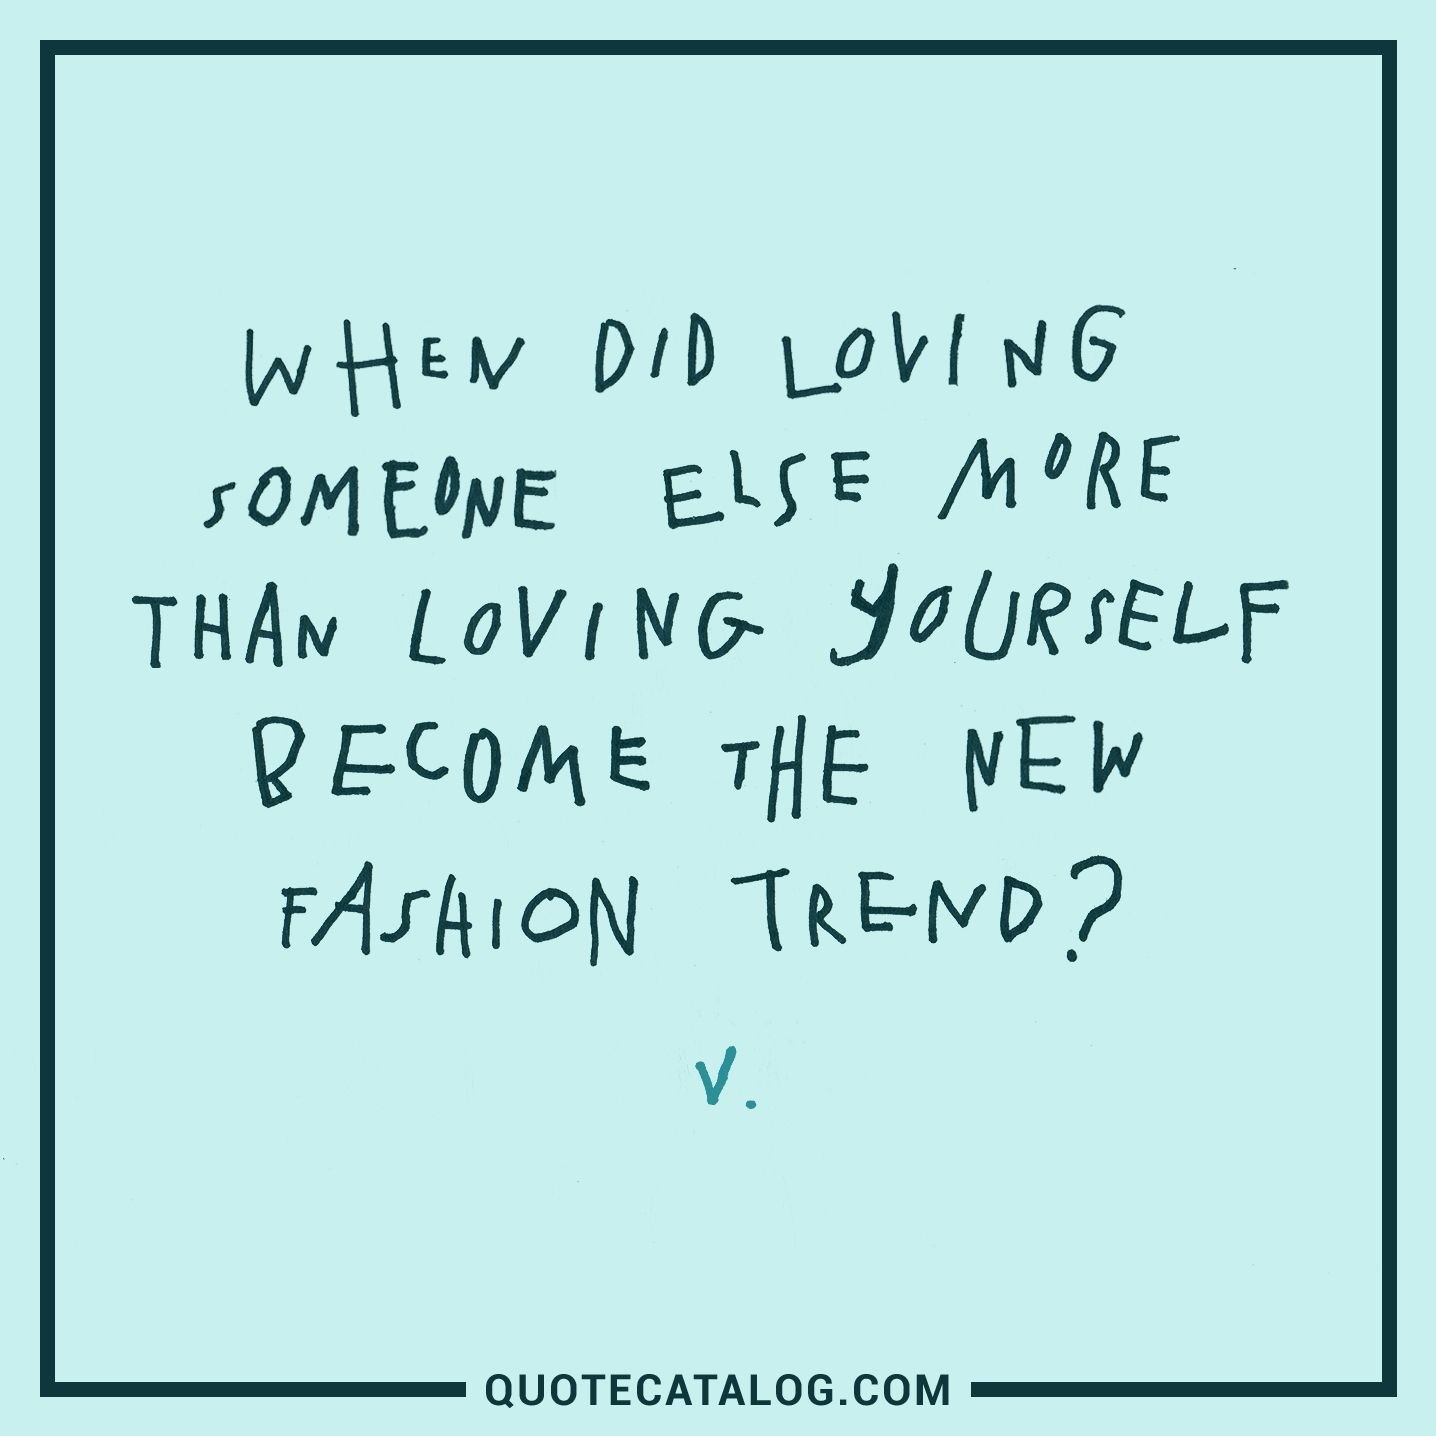 Quotes Of Loving Yourself Quotes  V Quote  When Did Loving Someone Else More Than L